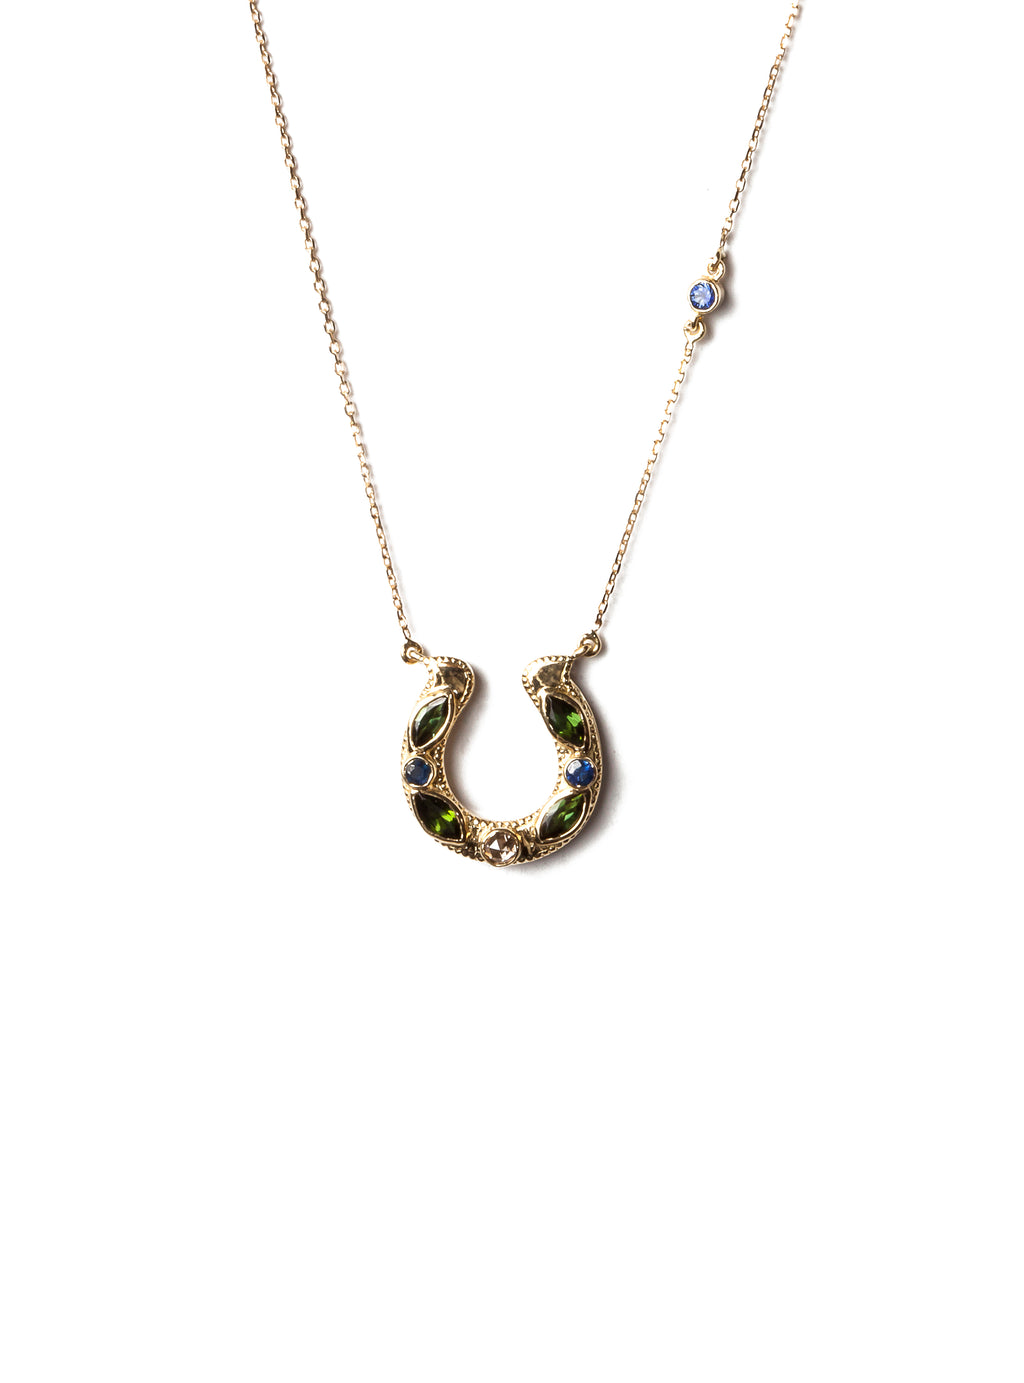 Horseshoe Necklace with Marquise Tourmalines, Sapphires and Diamonds